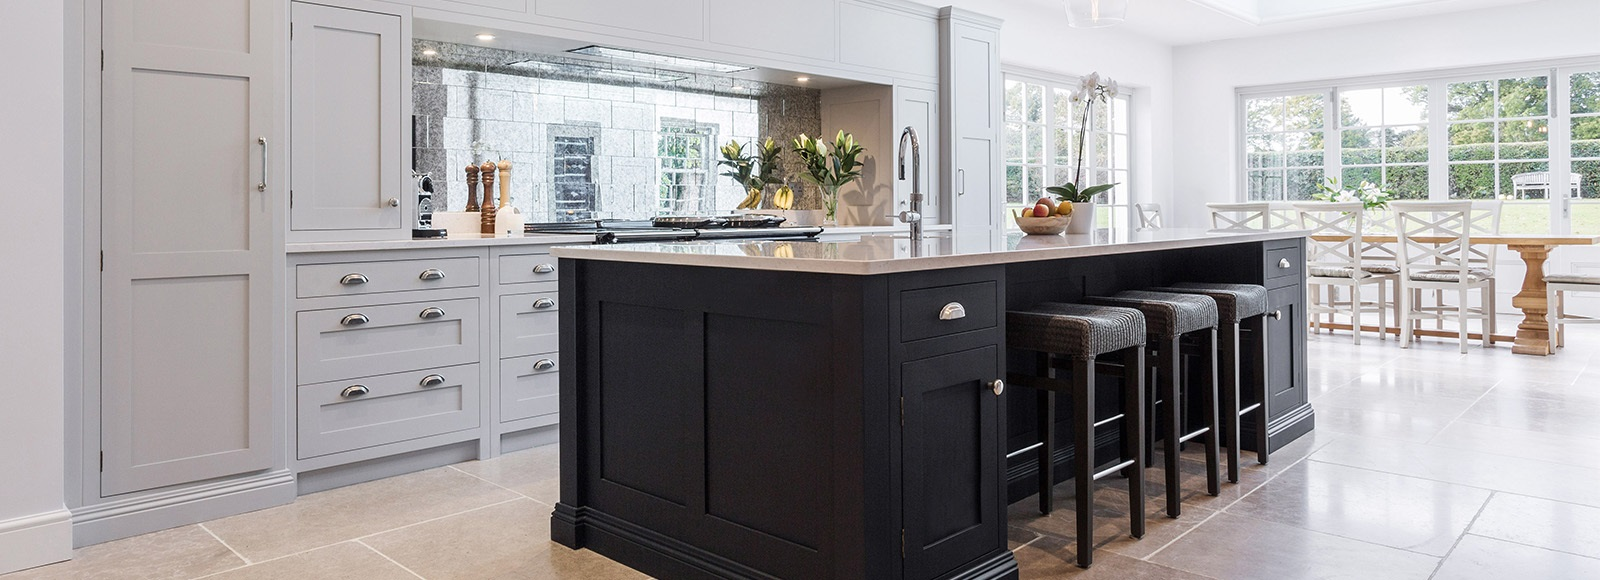 Luxury Open Plan Shaker Kitchen - Burlanes bespoke Wellsdown kitchen in navy and grey, with large central island, mirrored splashback and AGA.